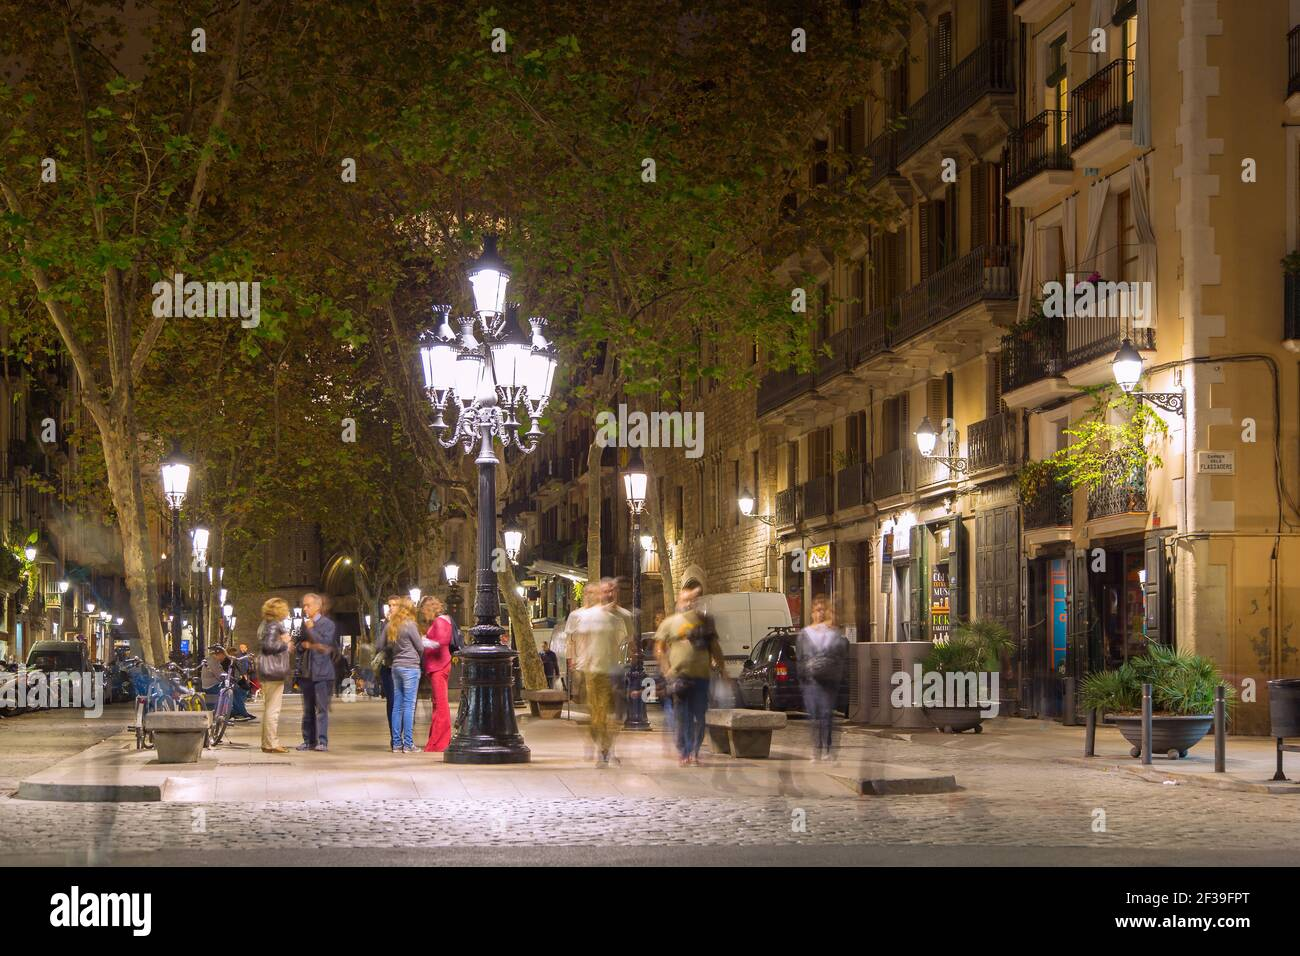 Geographie / Reisen, Spanien, Barcelona, Passeig del spring, Additional-Rights-Clearance-Info-not-available Stockfoto